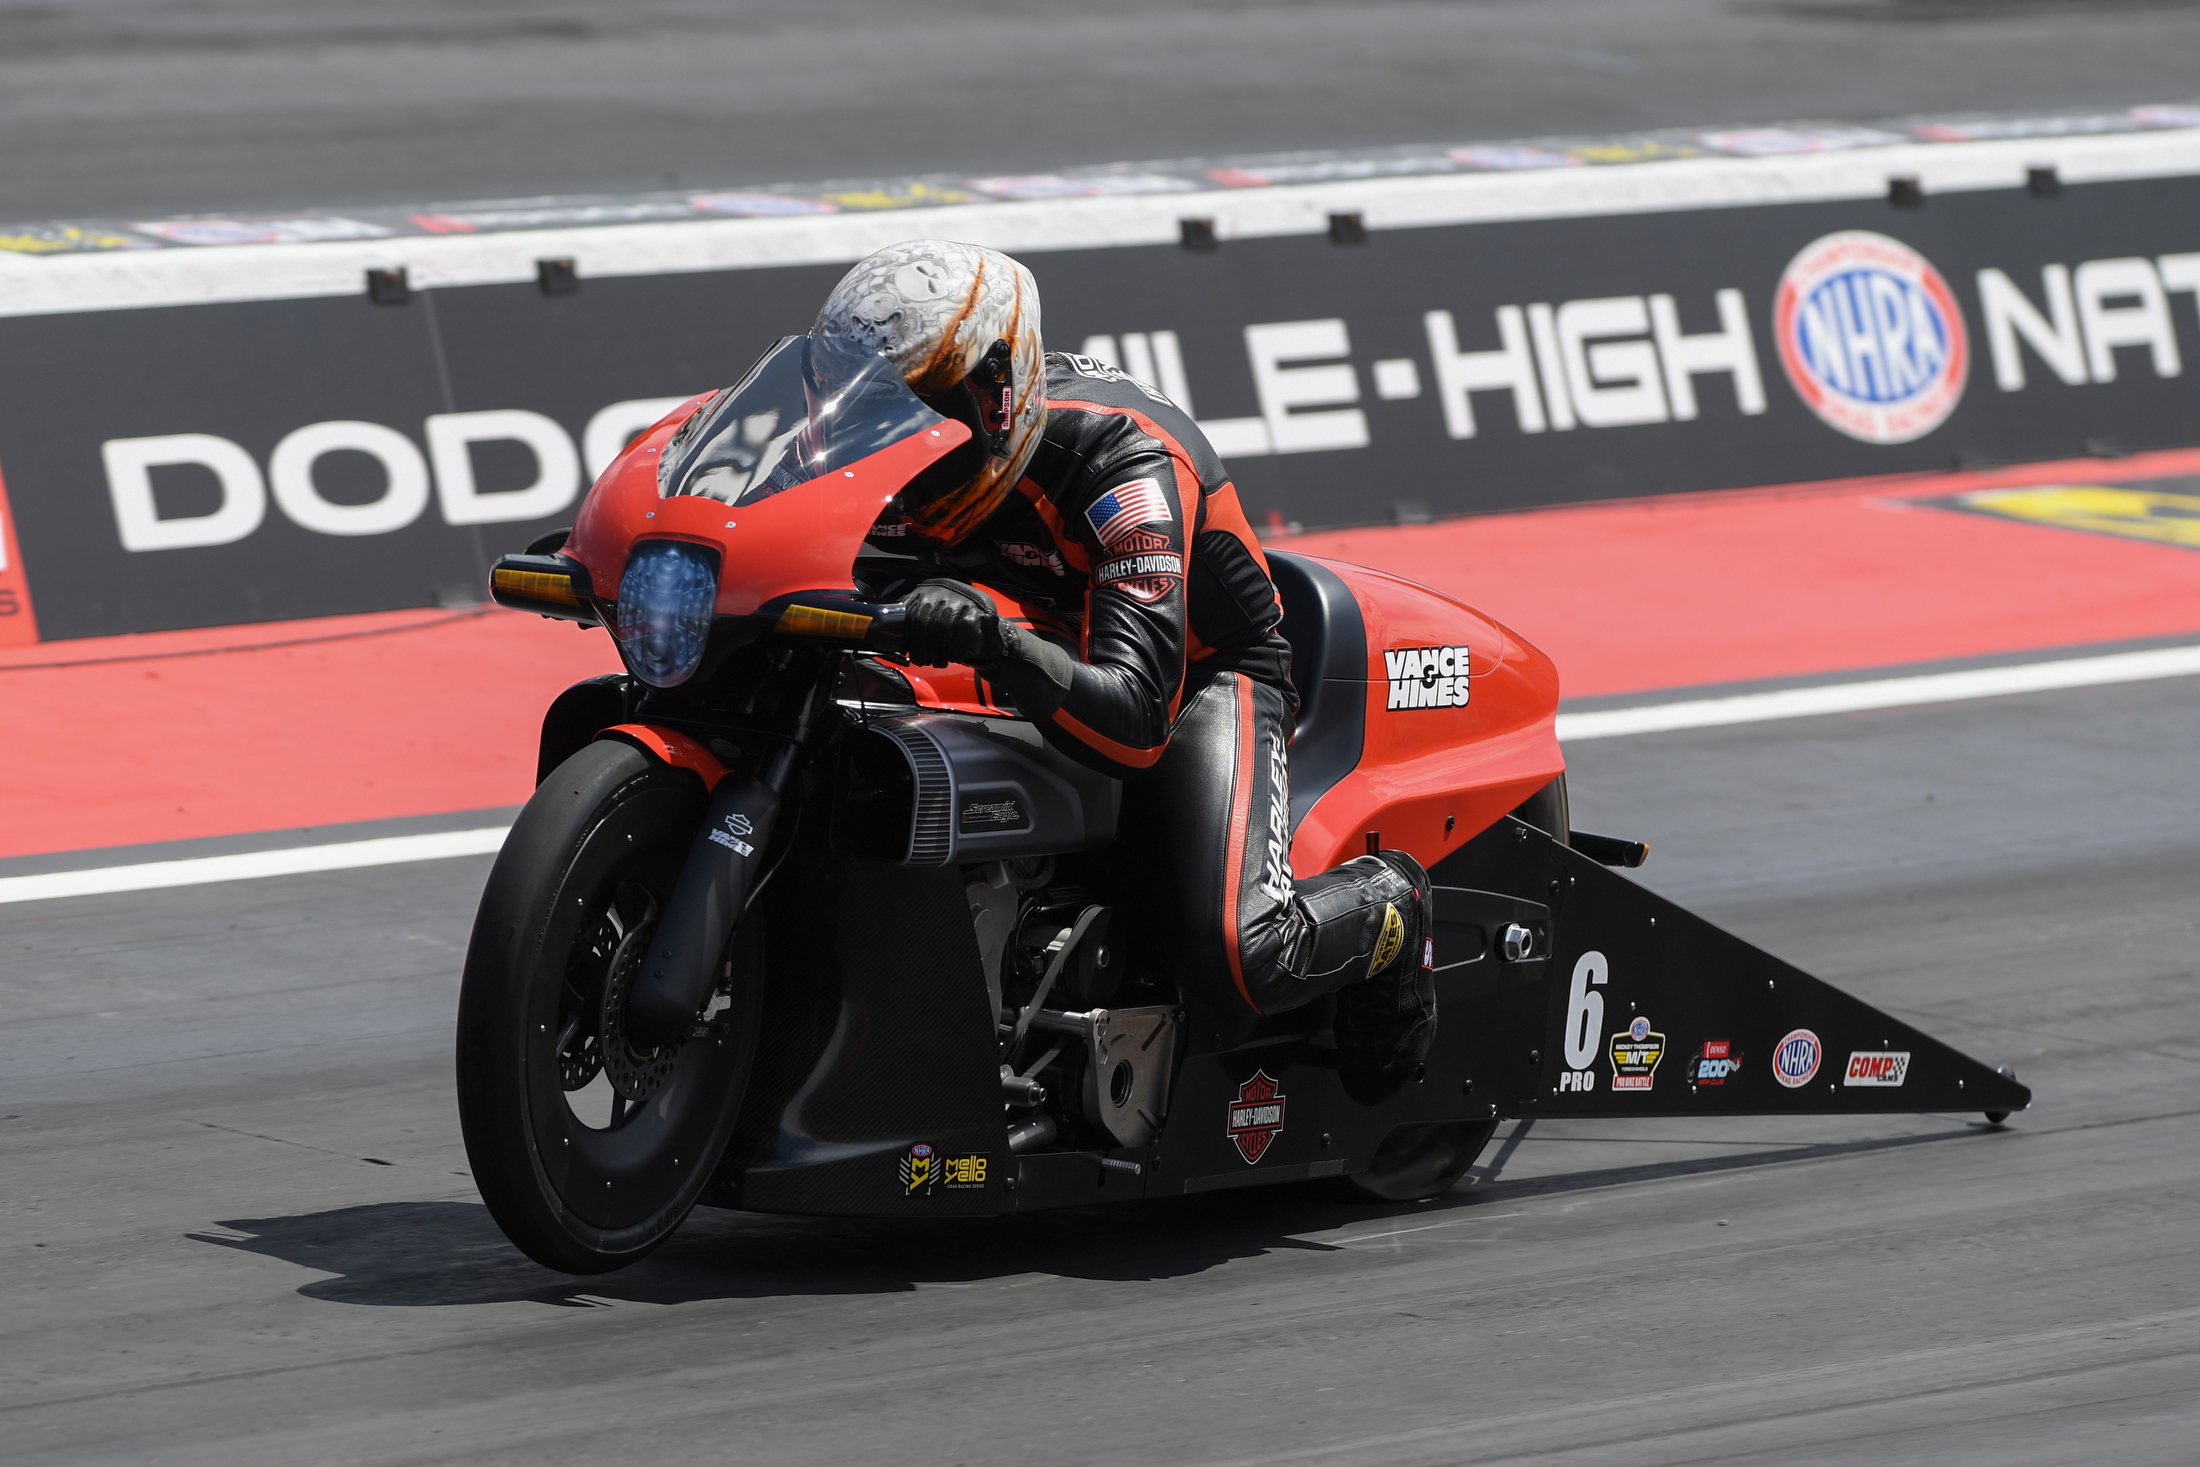 Pro Stock Motorcycle rider Andrew Hines racing on Sunday at the Dodge Mile-High NHRA Nationals presented by Pennzoil